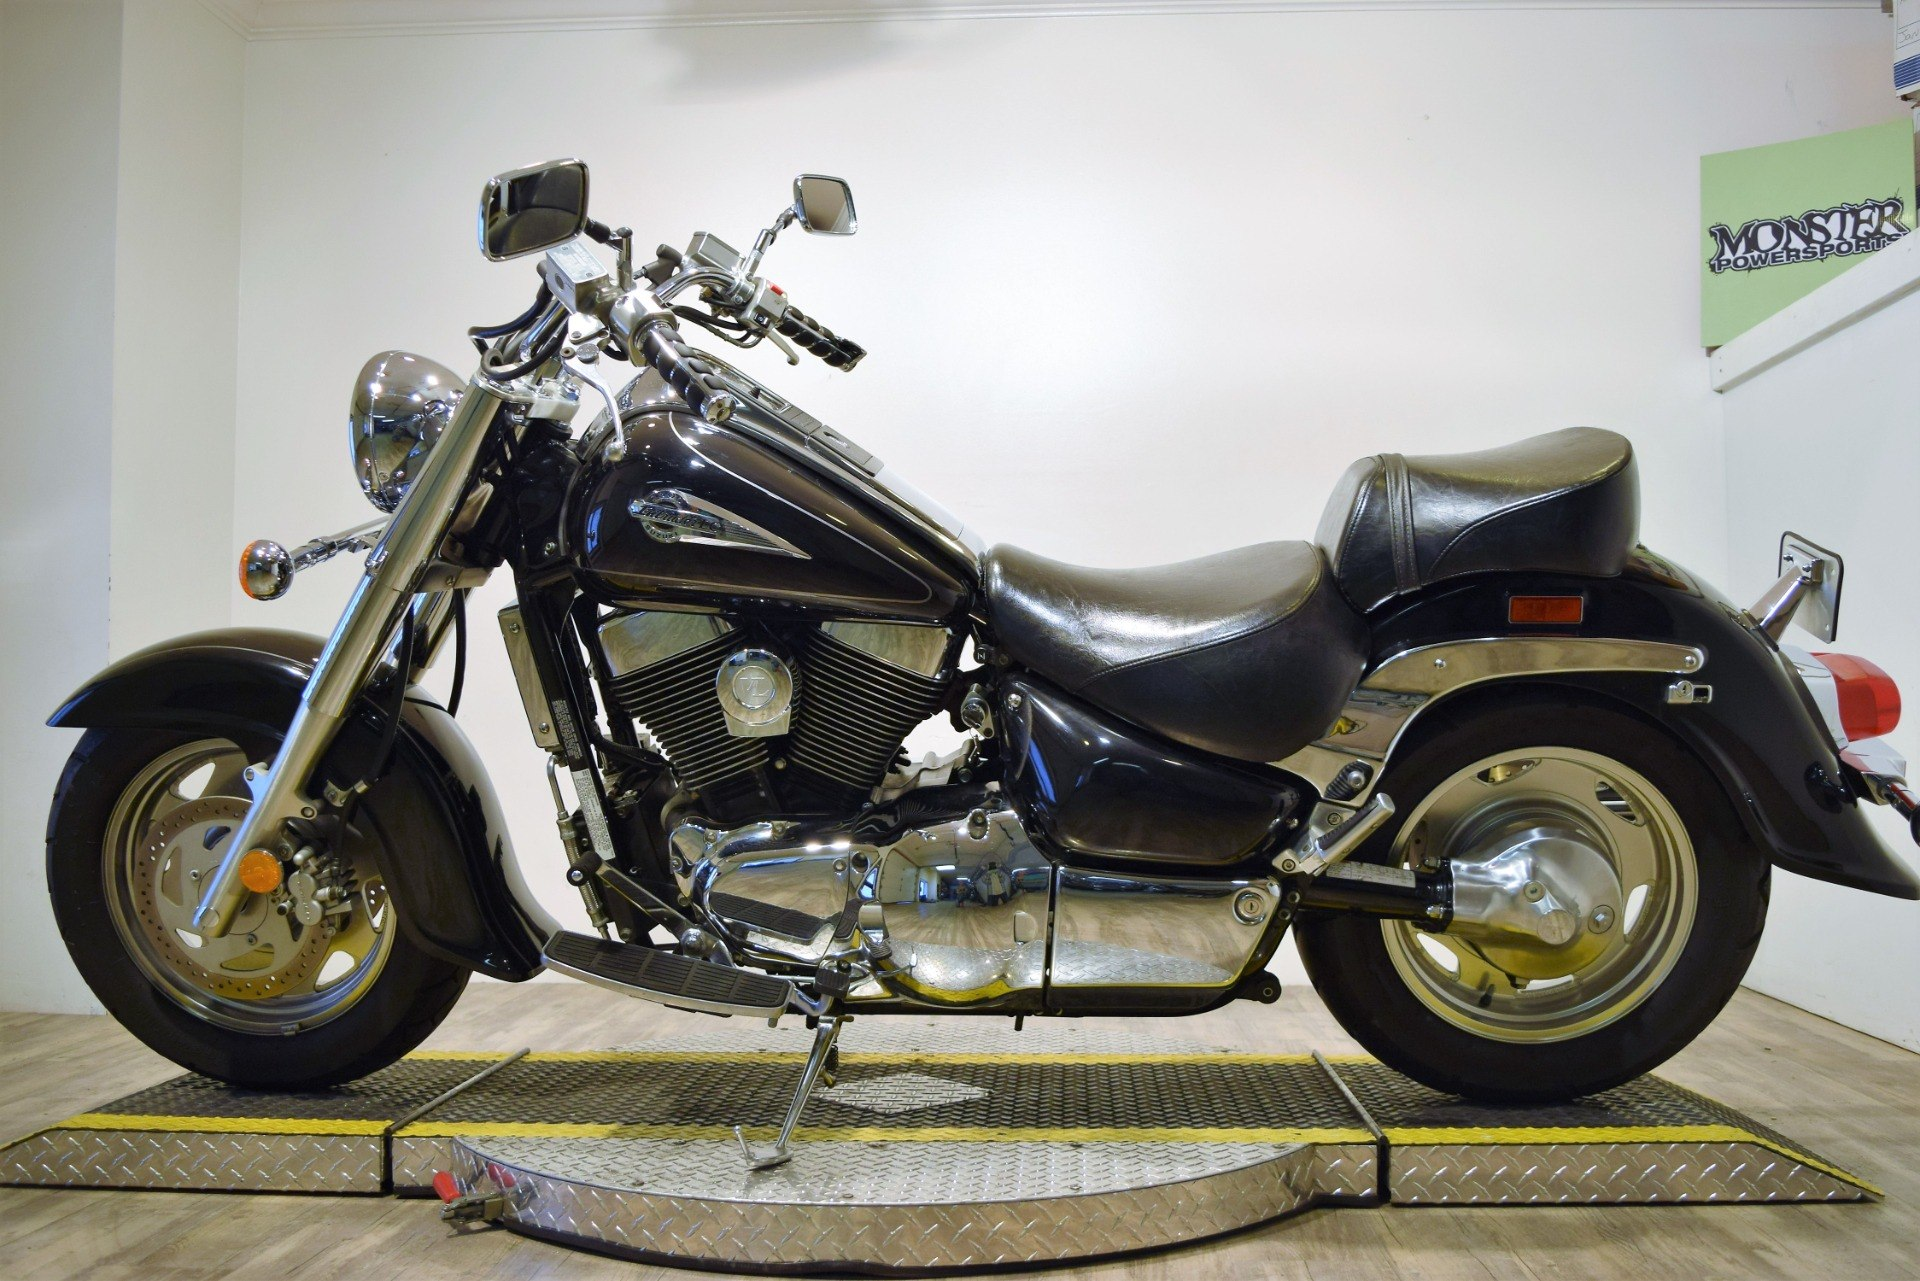 2002 Suzuki Intruder 1500 in Wauconda, Illinois